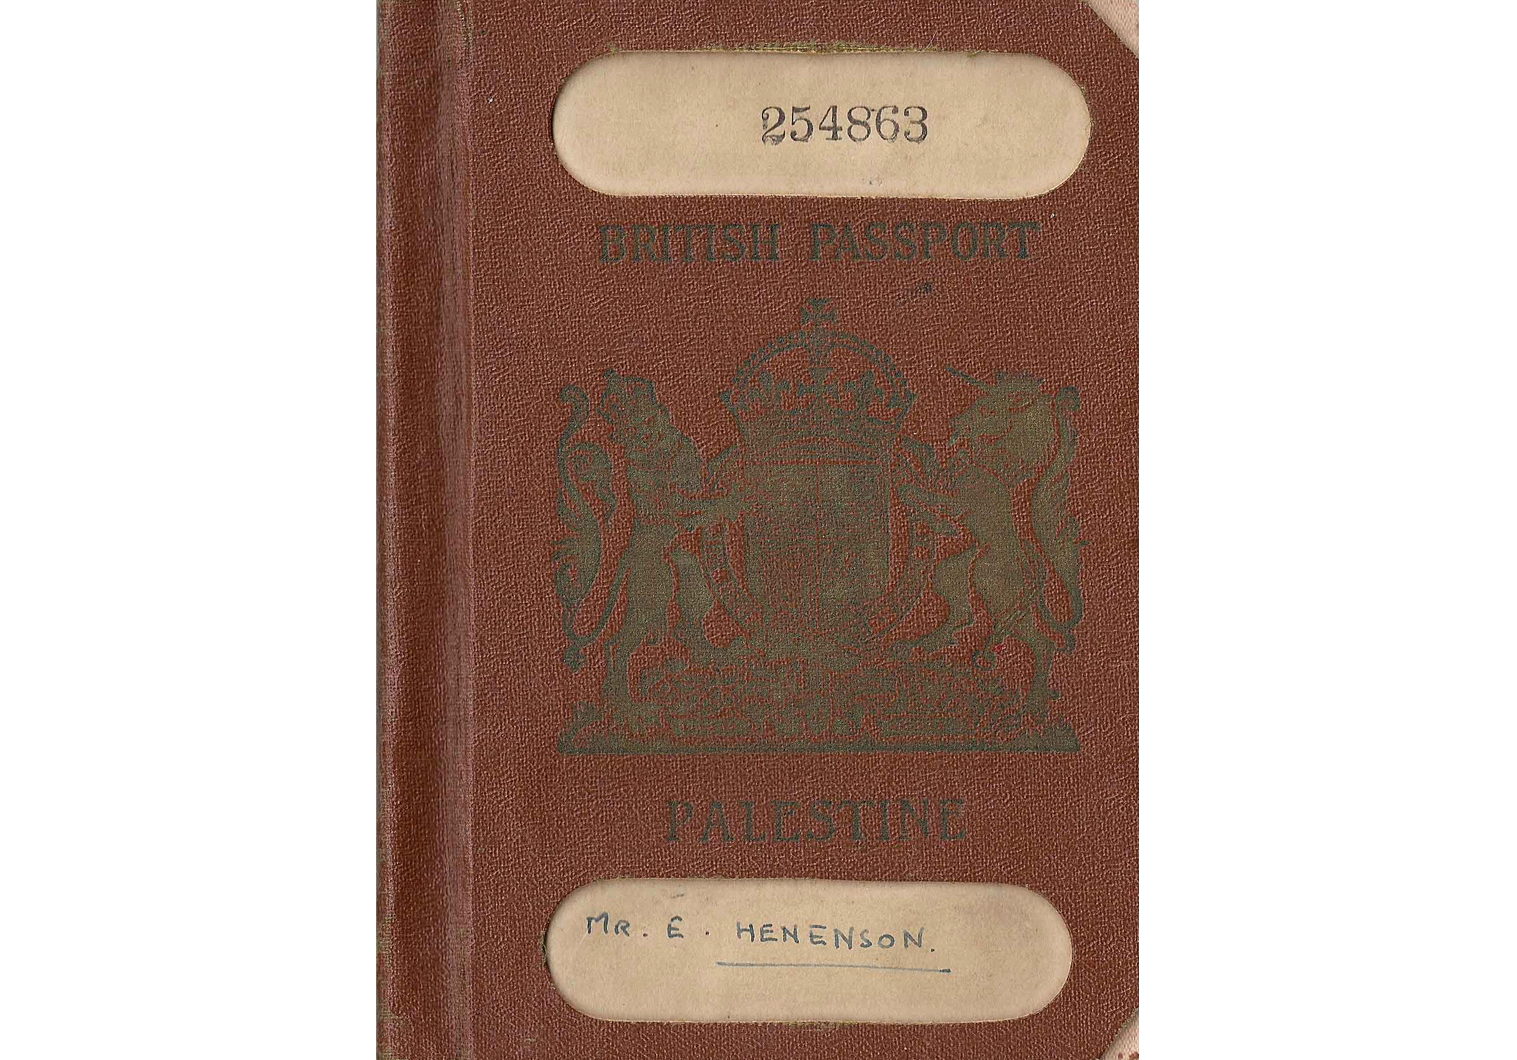 British Palestine passport